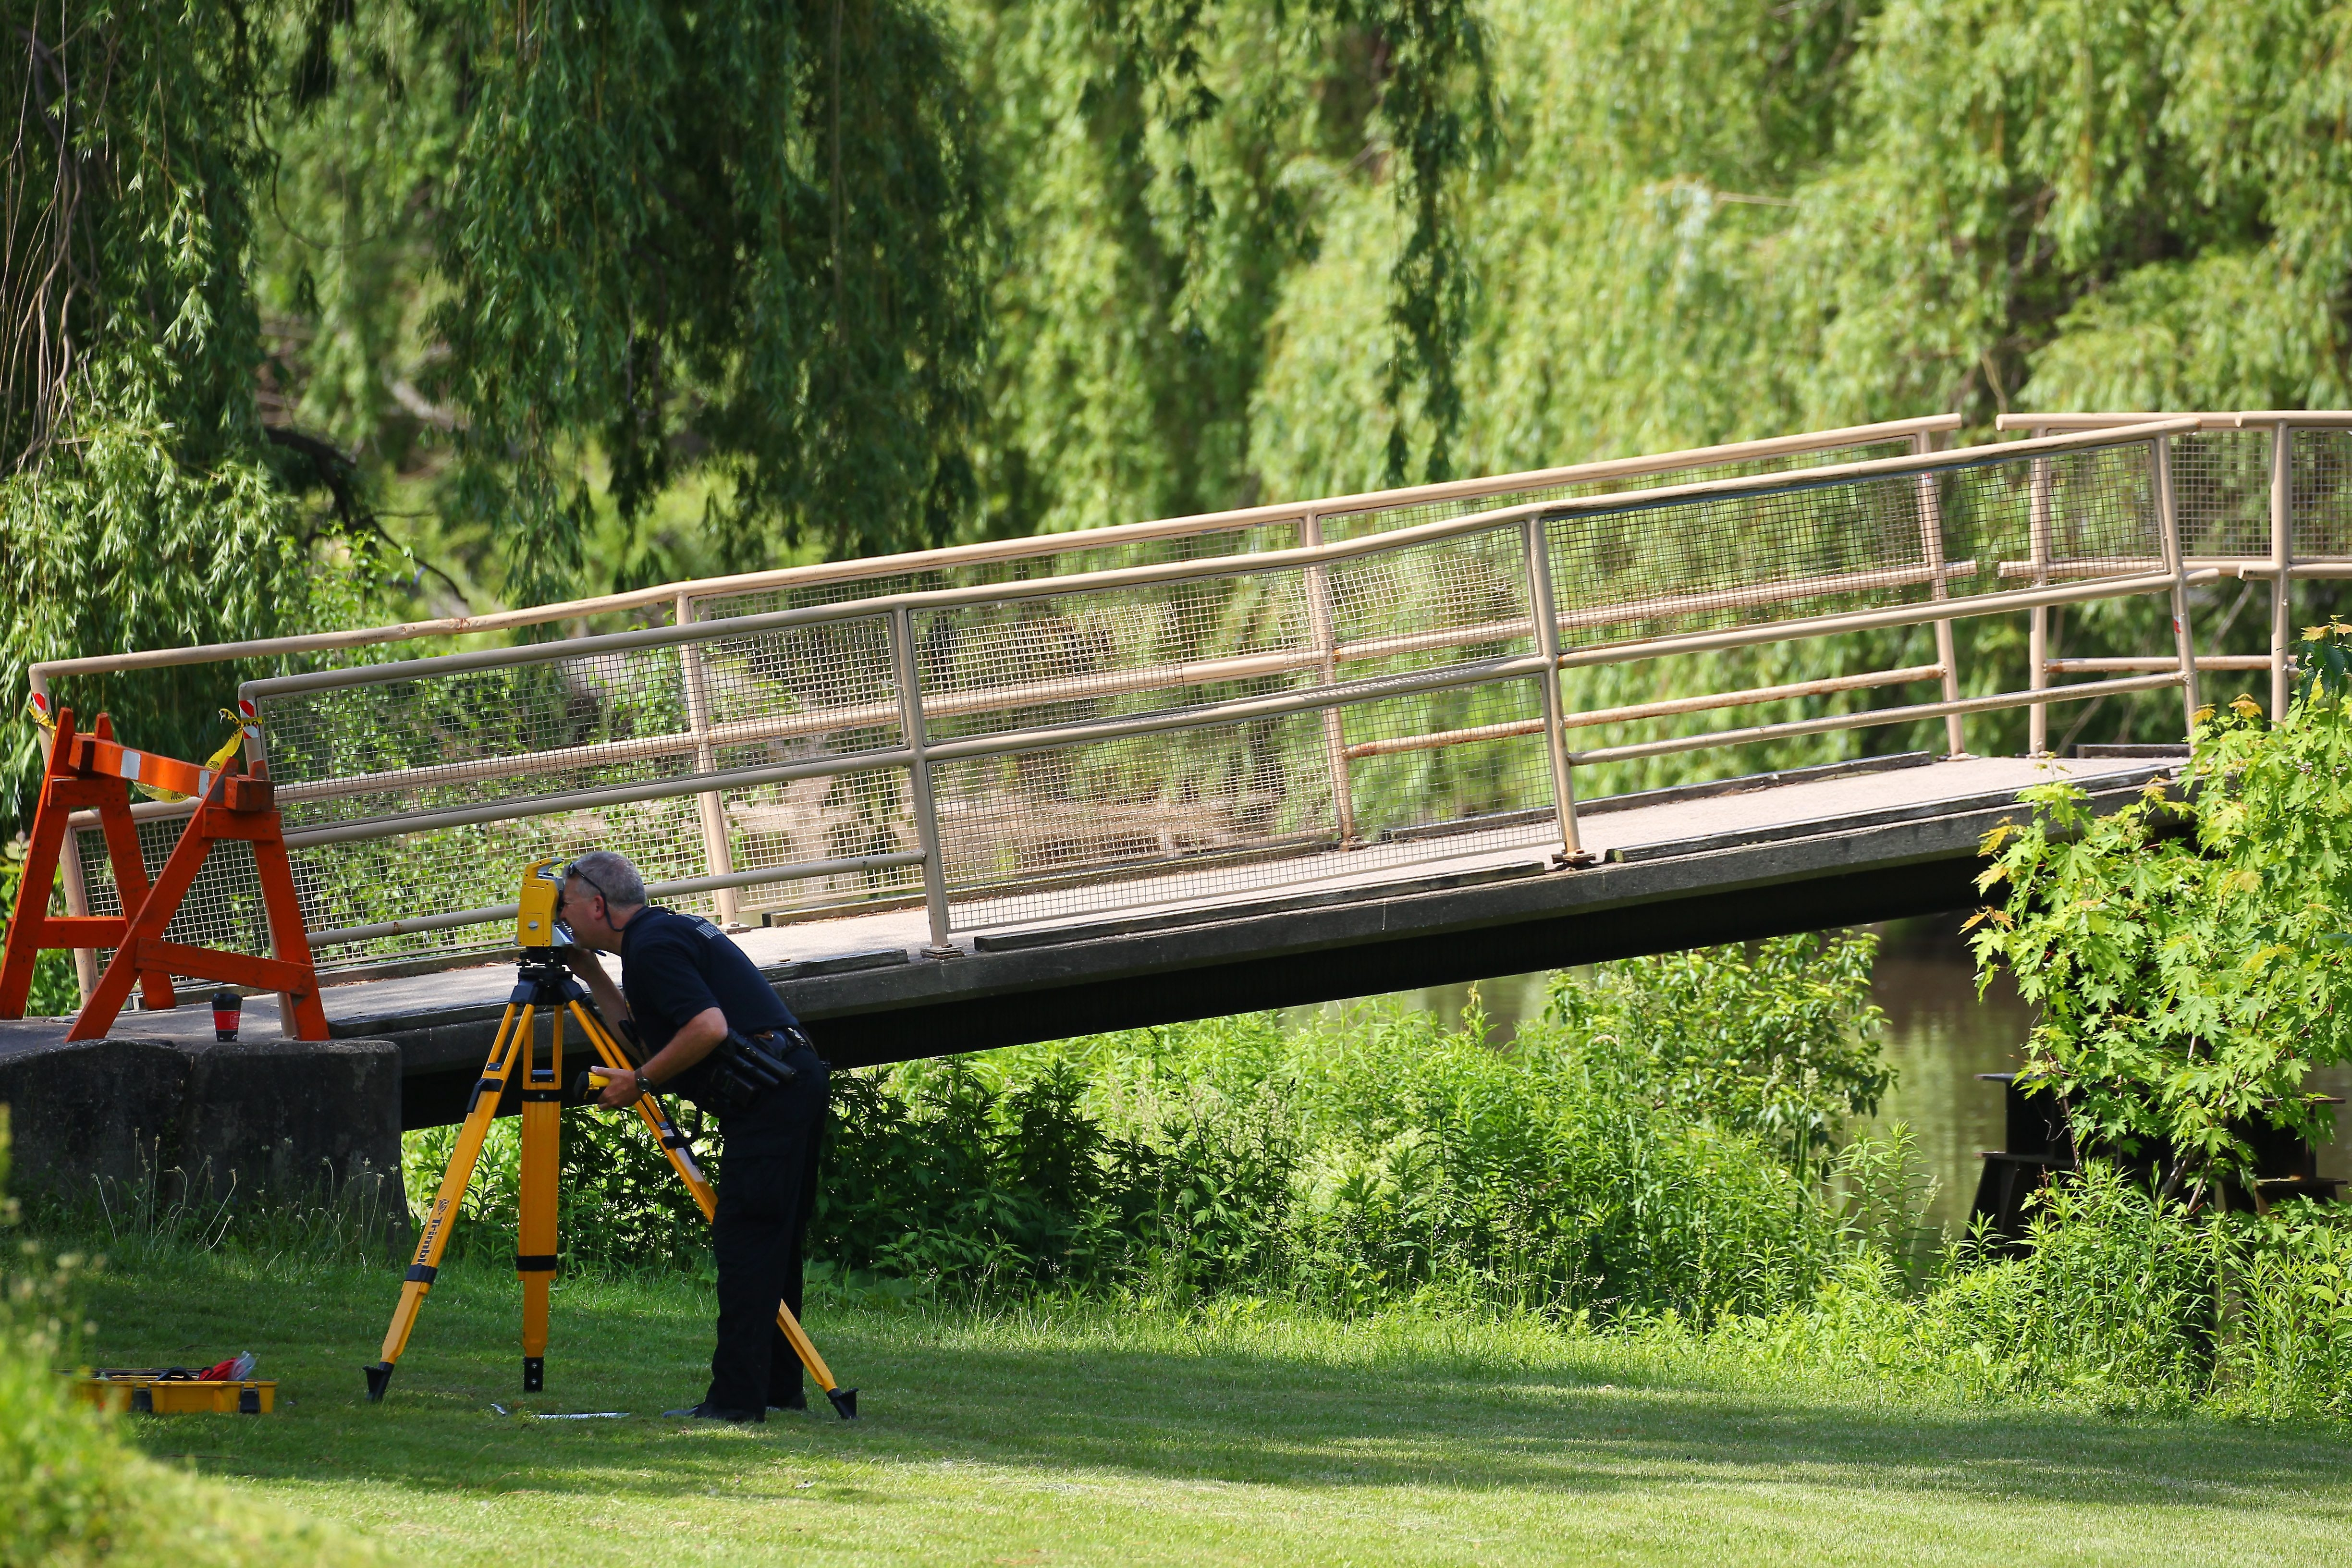 This 2015 photo shows police investigating near the foot bridge where Avery Gardner died in a boating accident. (Mark Mulville/News file photo)